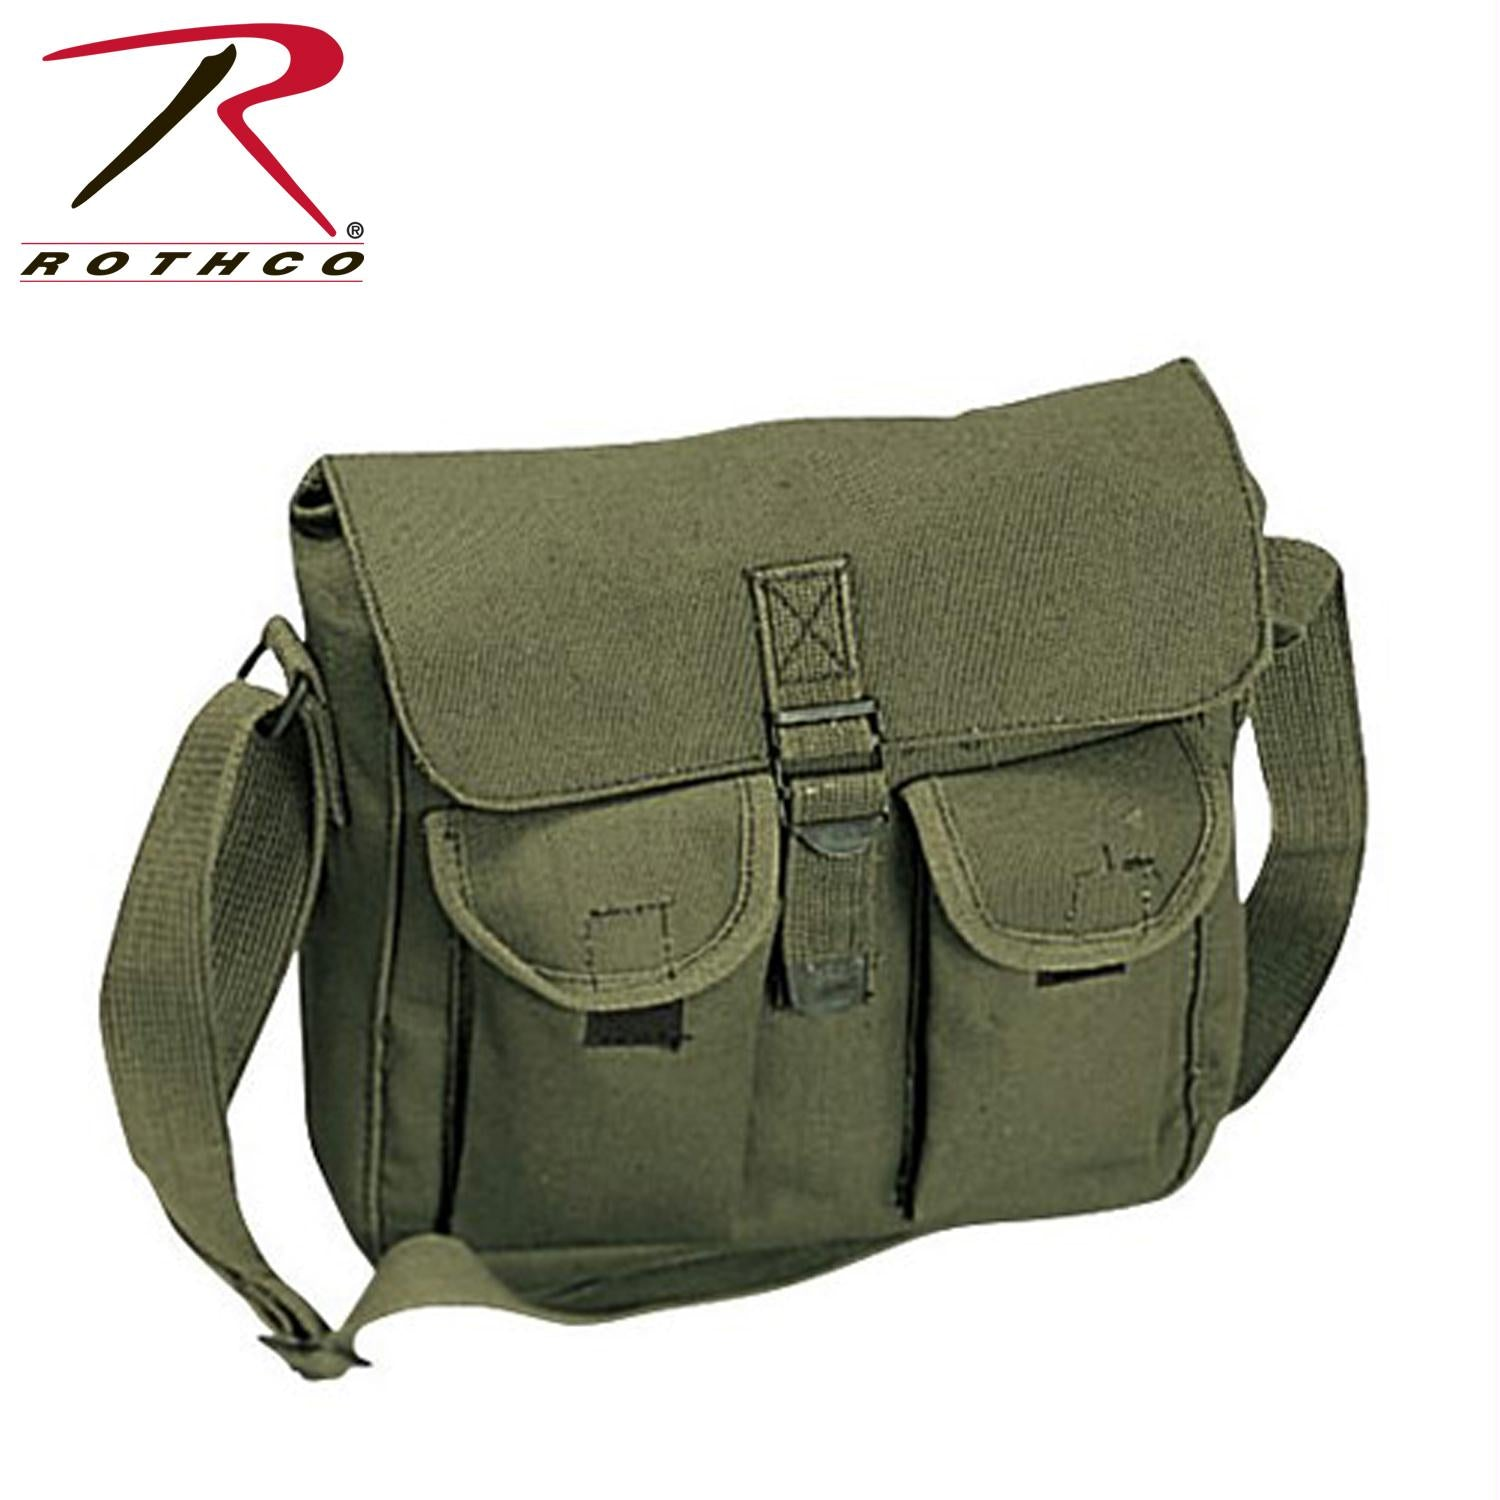 Rothco Canvas Ammo Shoulder Bag